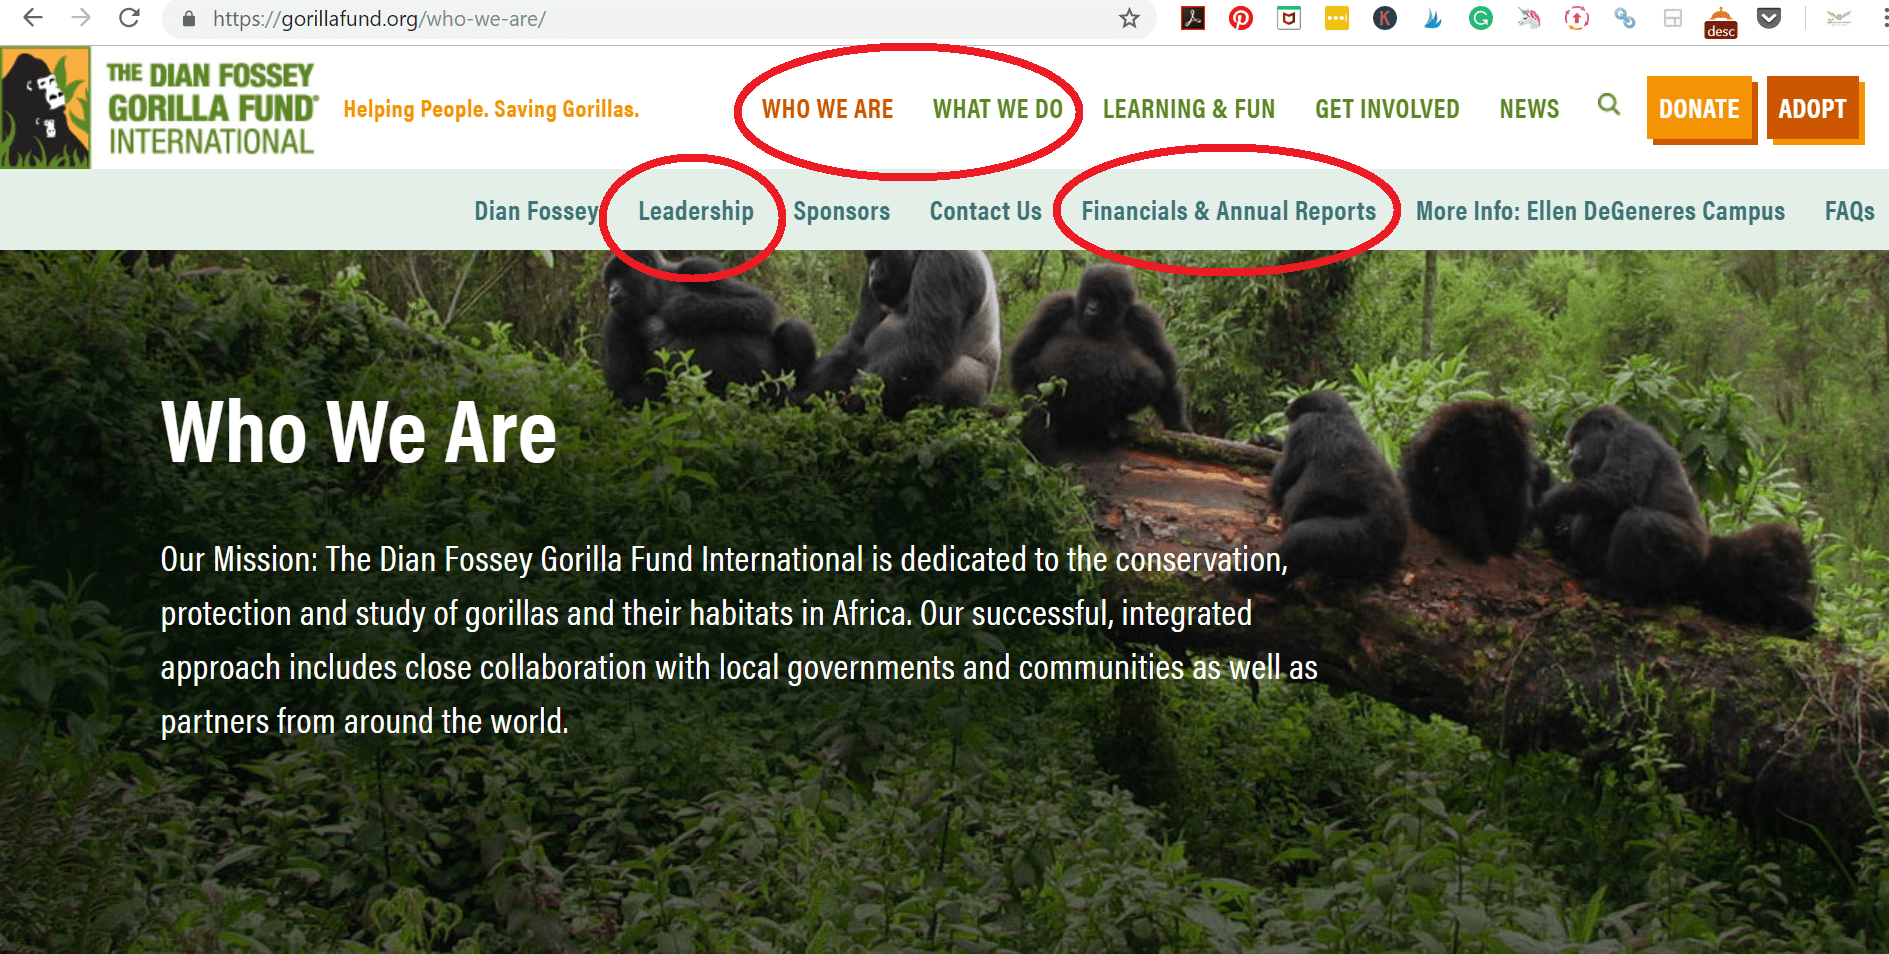 vet ethical volunteering organization dian fossey gorilla fund